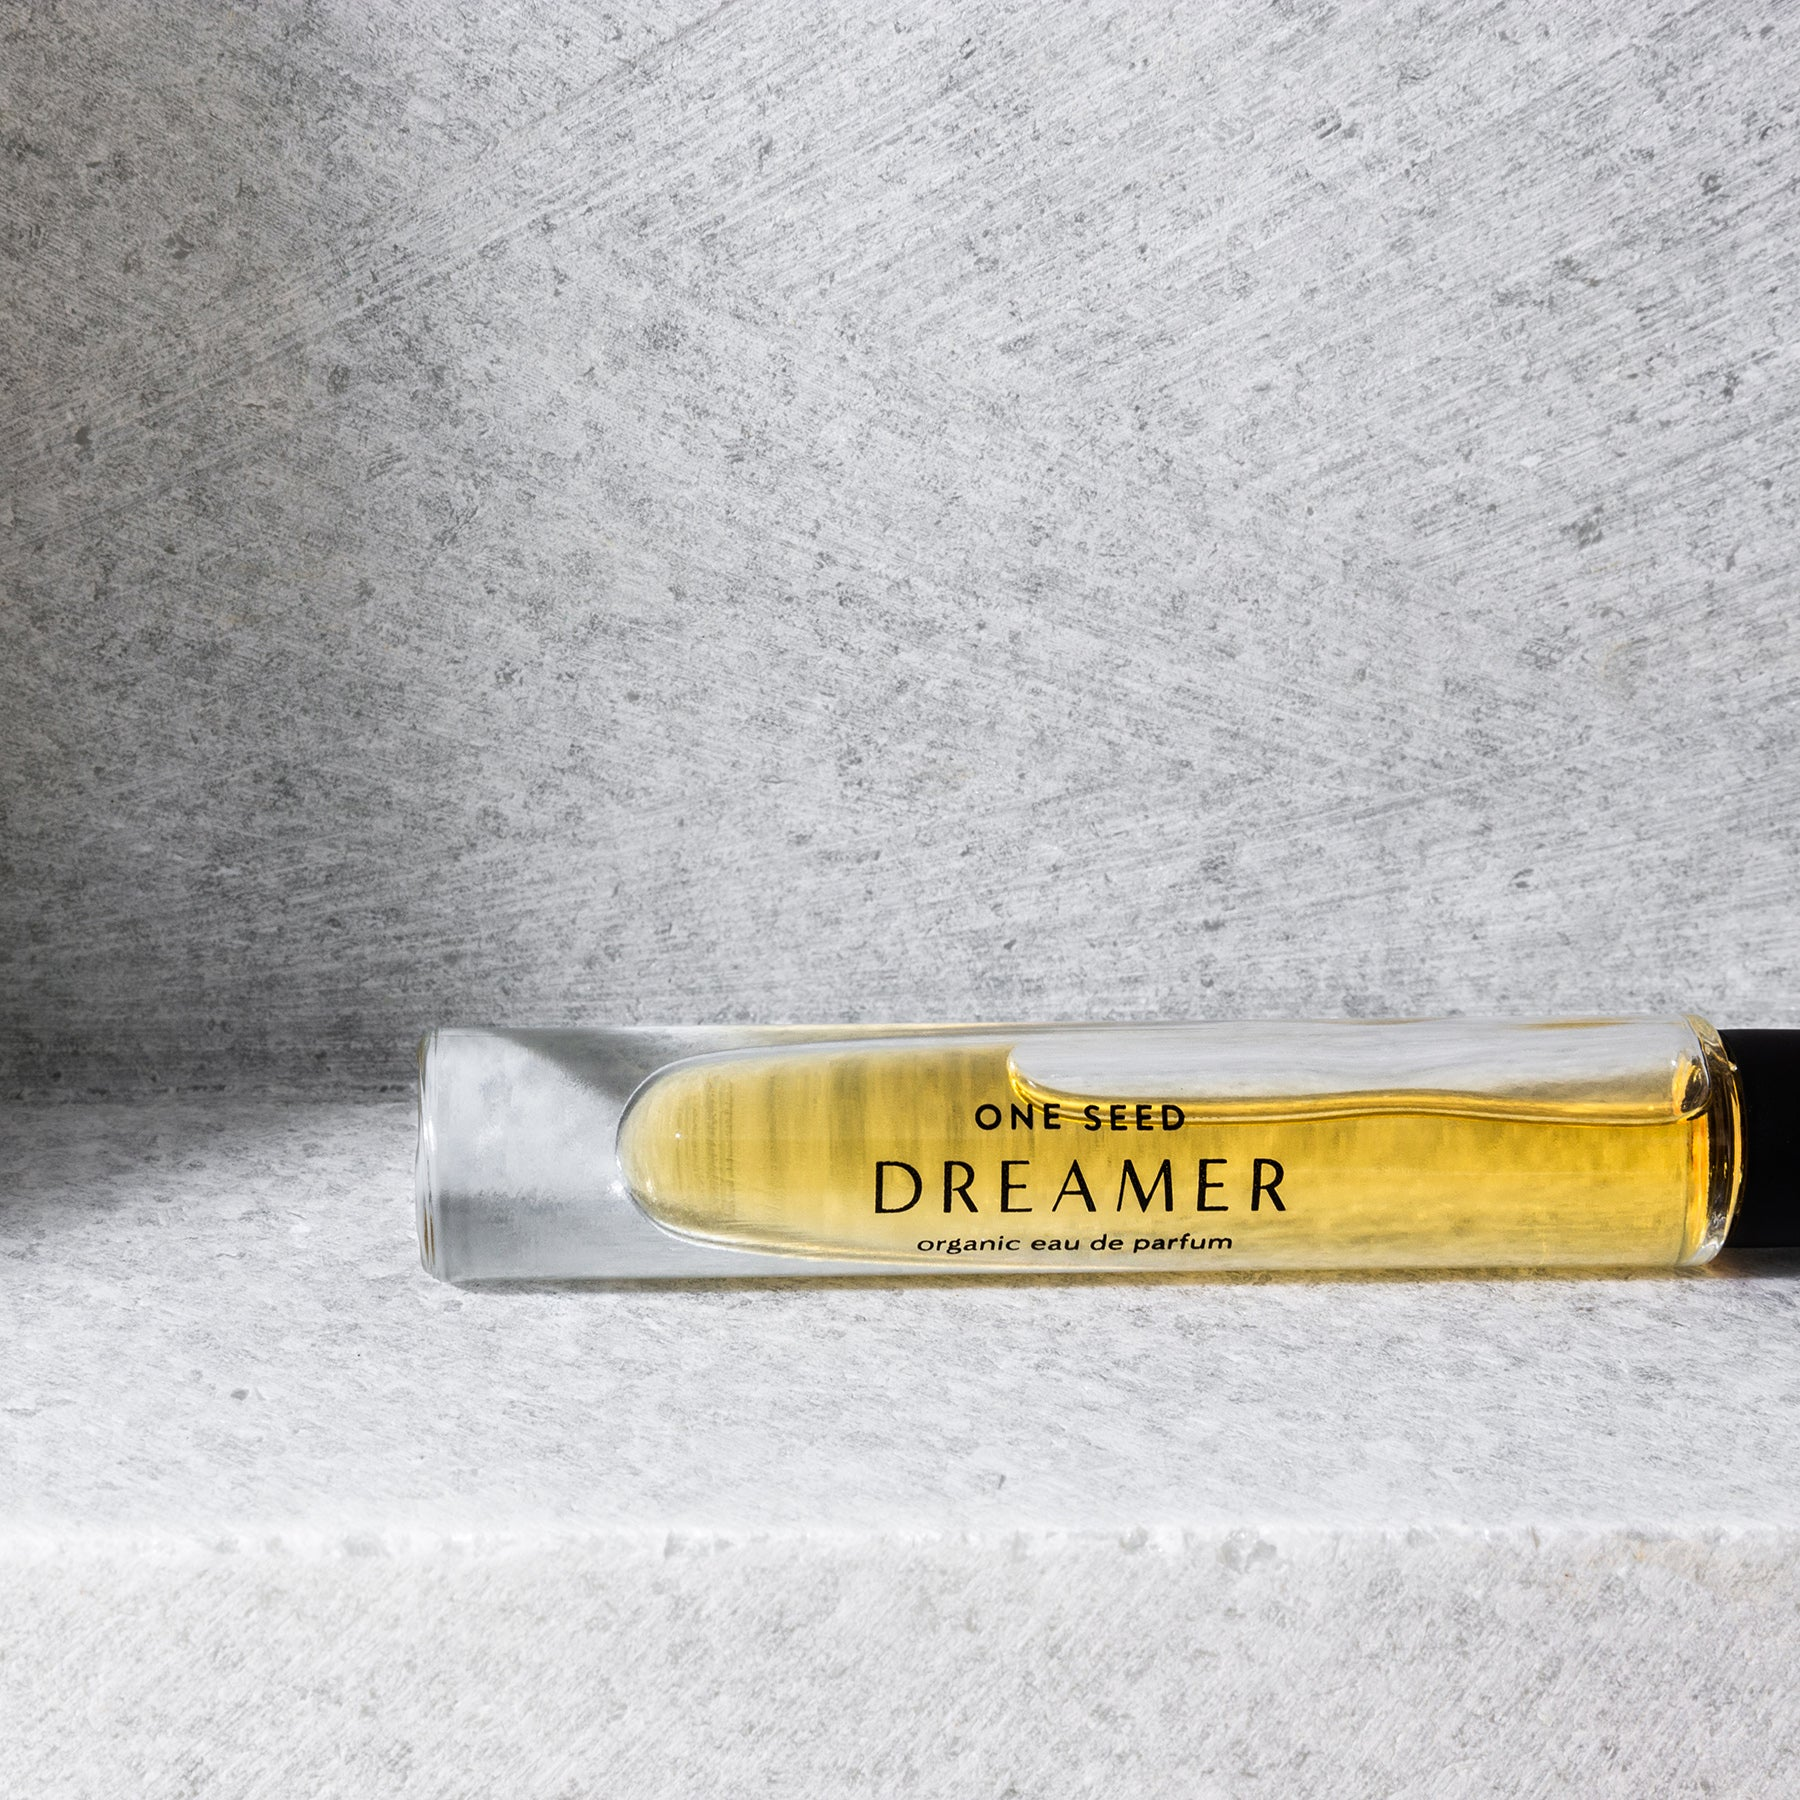 dreamer rollerball natural organic perfume one seed peach